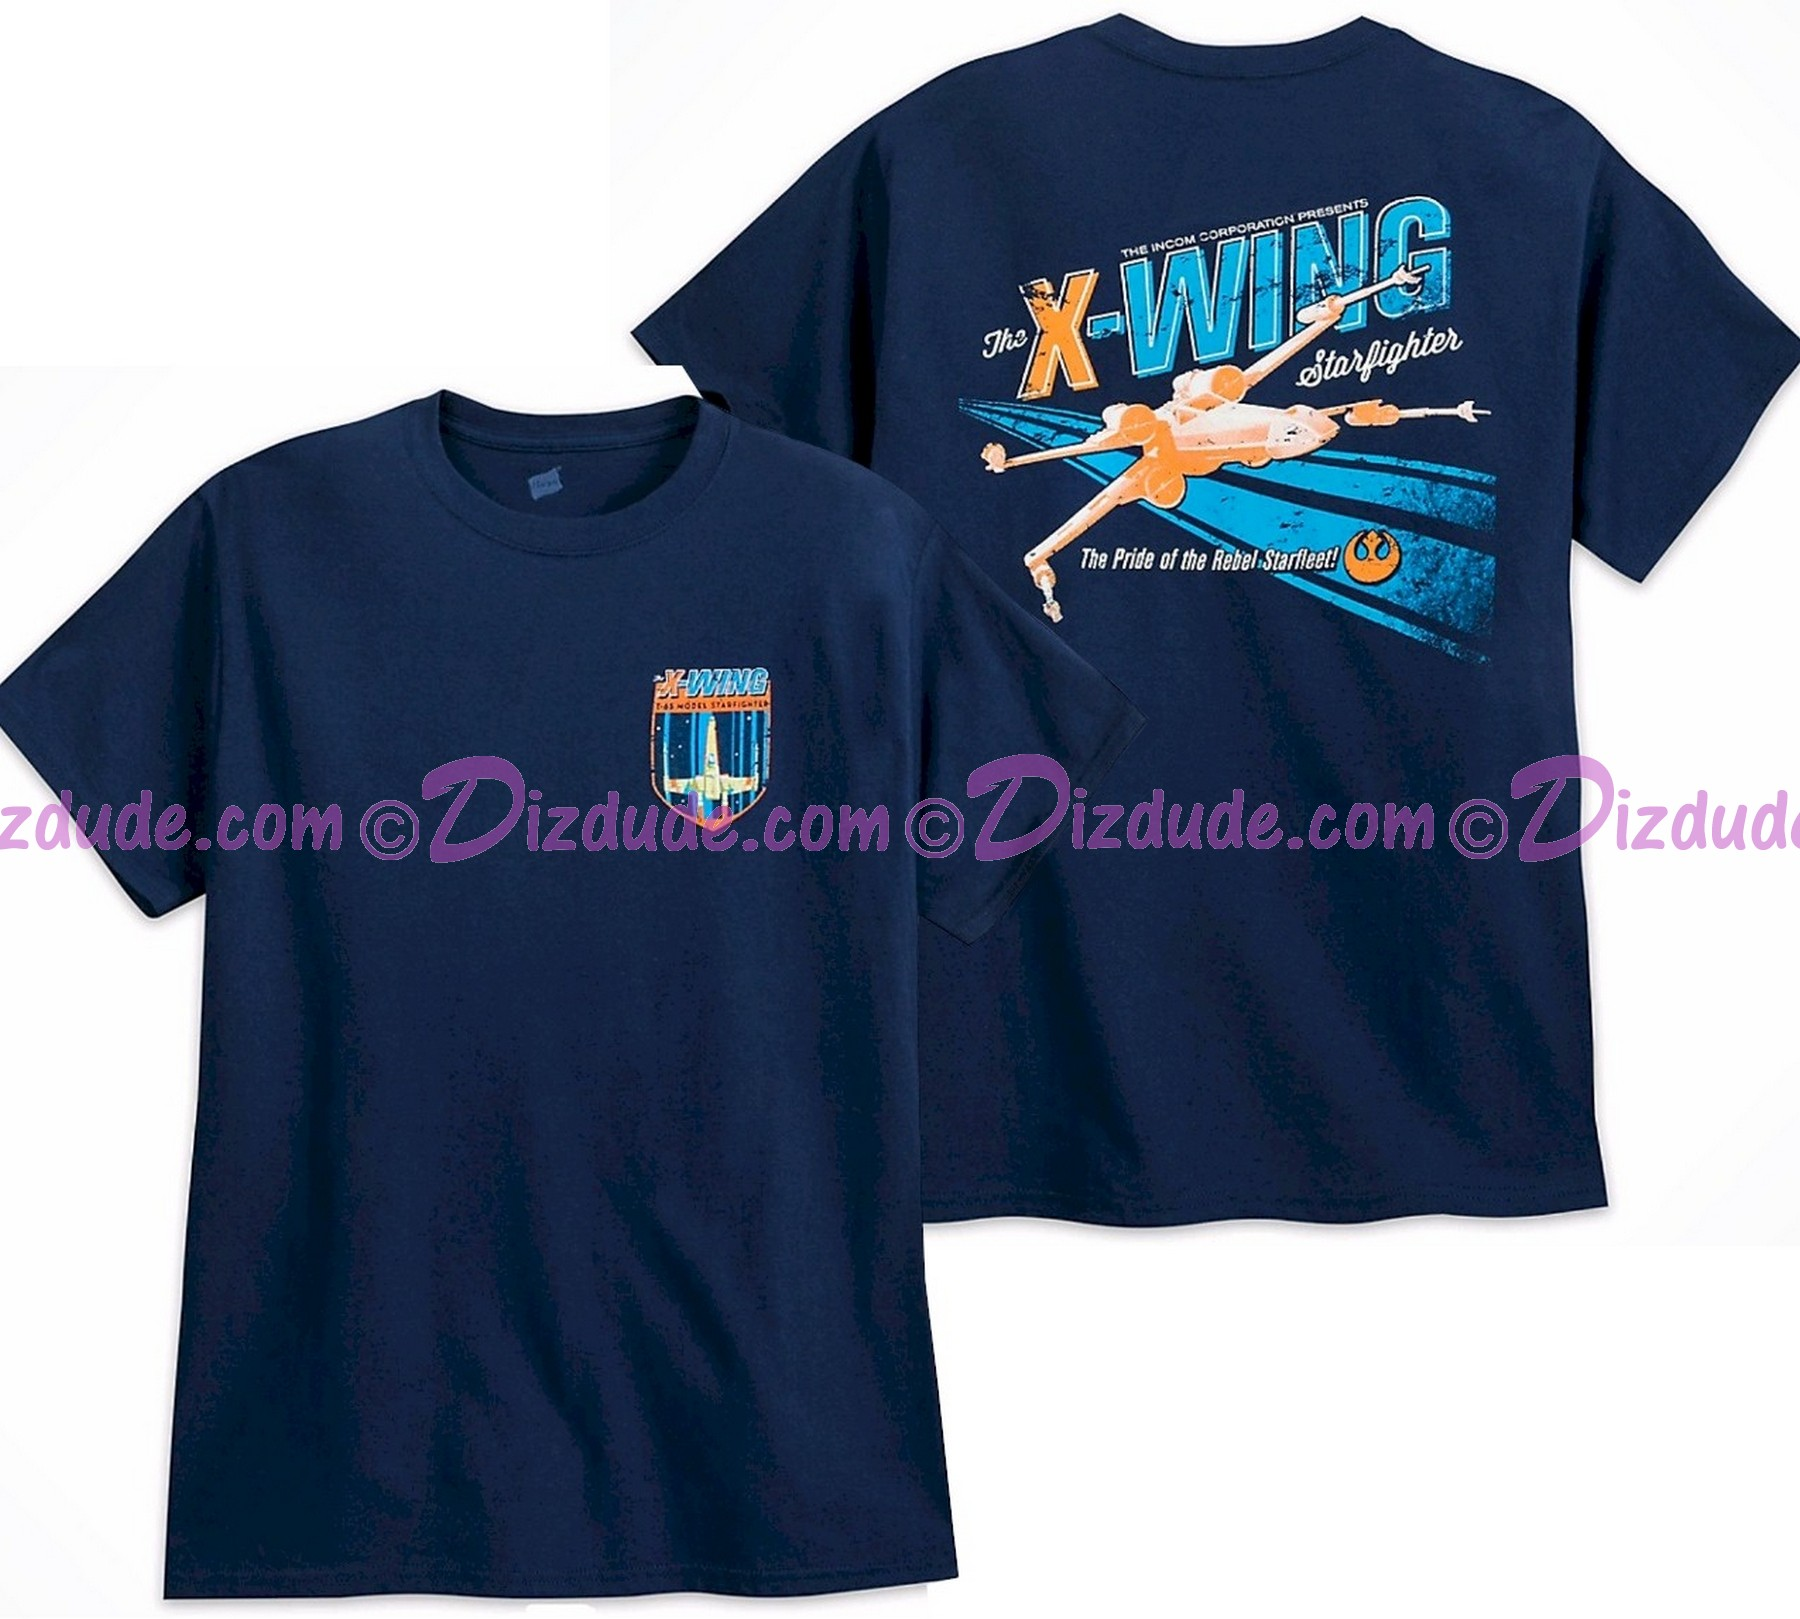 Disney Star Wars Rebel X-Wing Adult T-Shirt (Tshirt, T shirt or Tee) Printed Front & Back © Dizdude.com